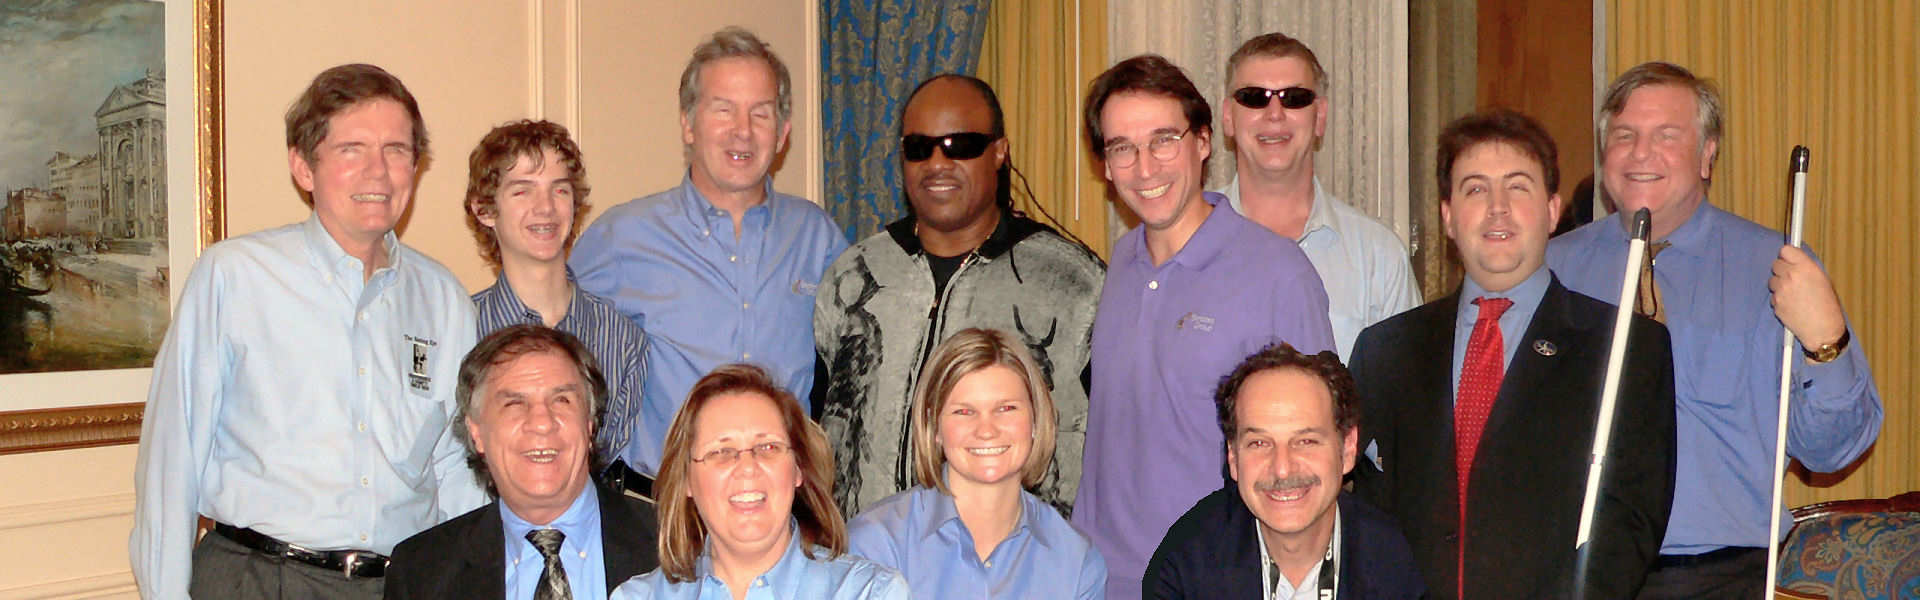 Mike May with Stevie Wonder and Accessibility Group at CES 2009